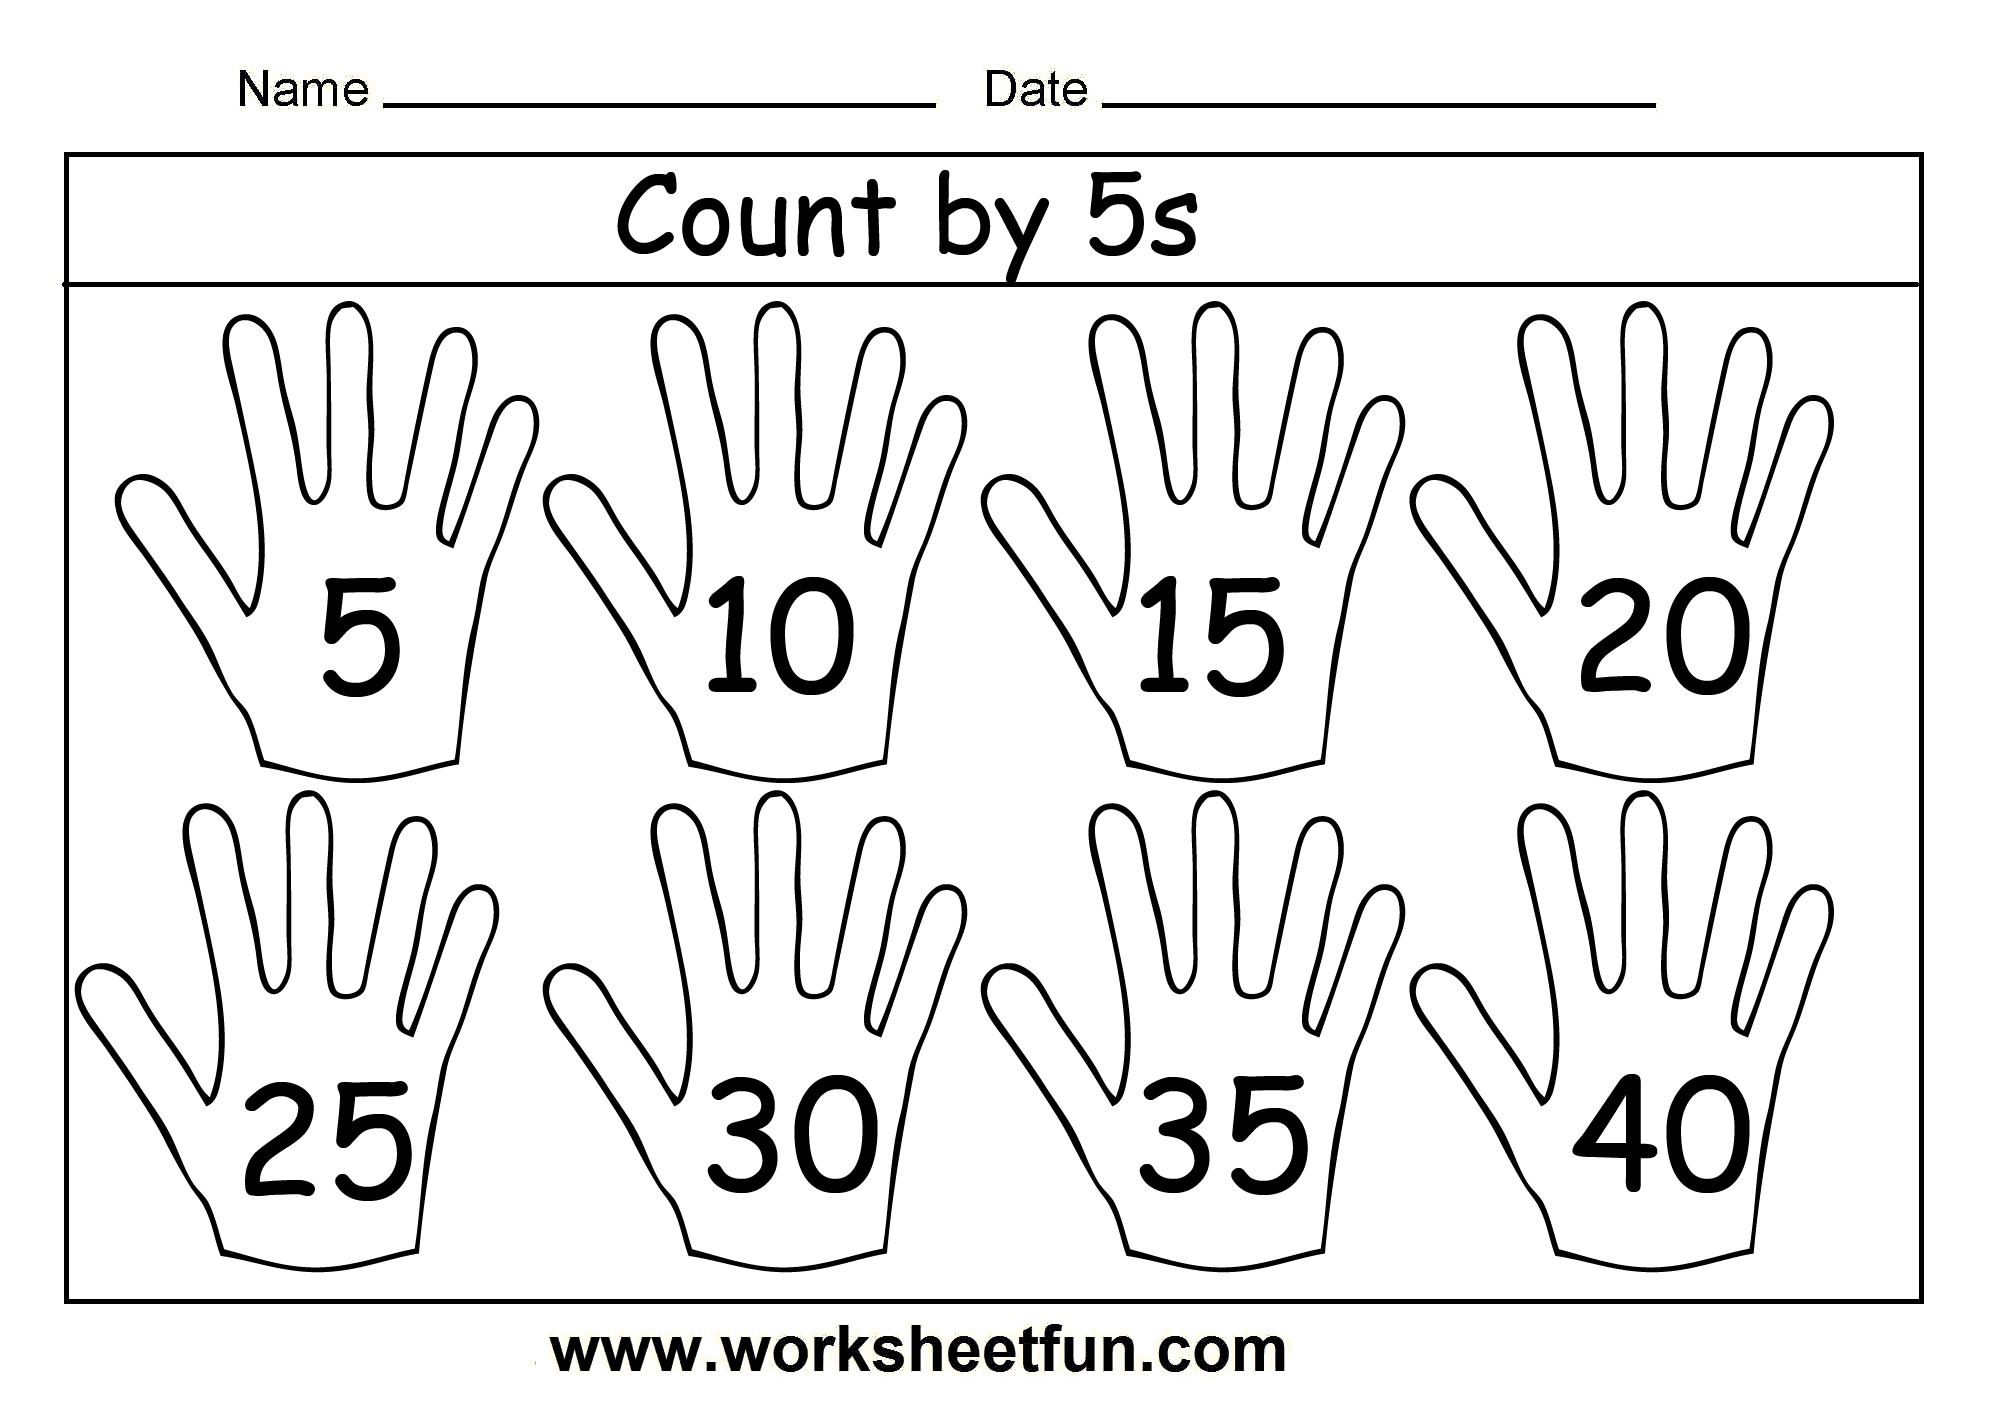 hight resolution of Count by 5s – 3 Worksheets   Counting in 5s